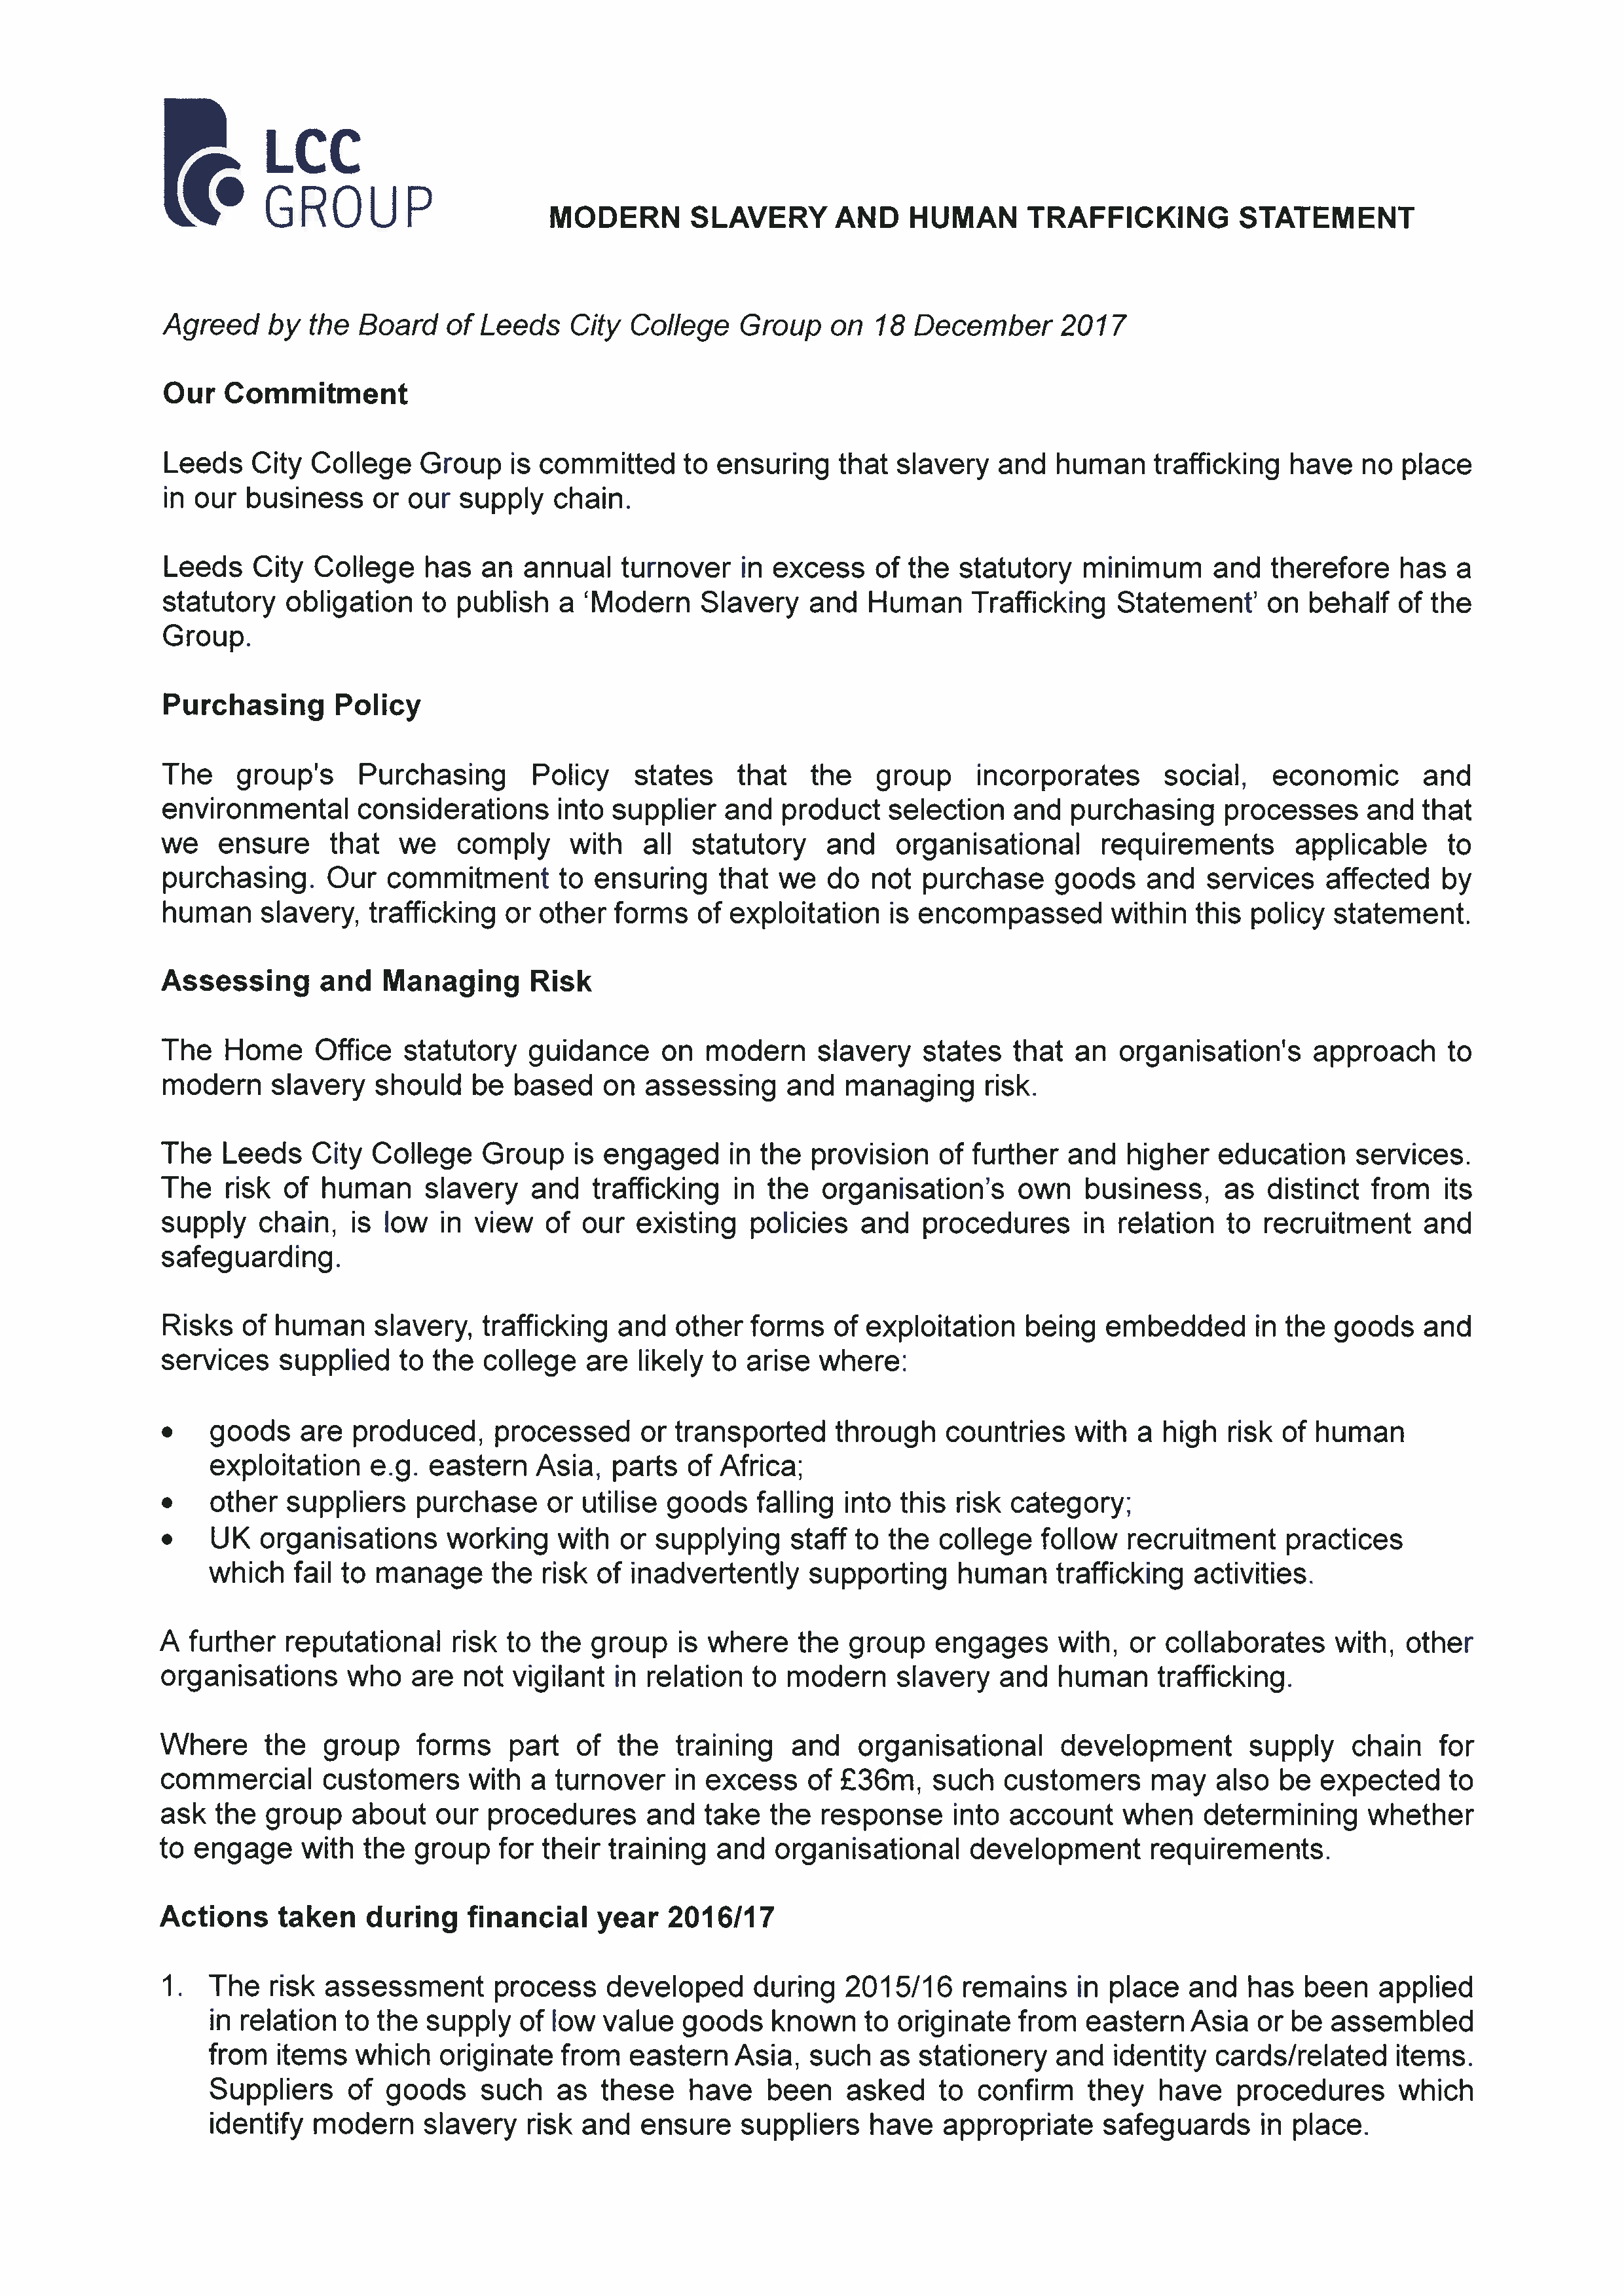 Modern Slavery and Human Trafficking Statement cover